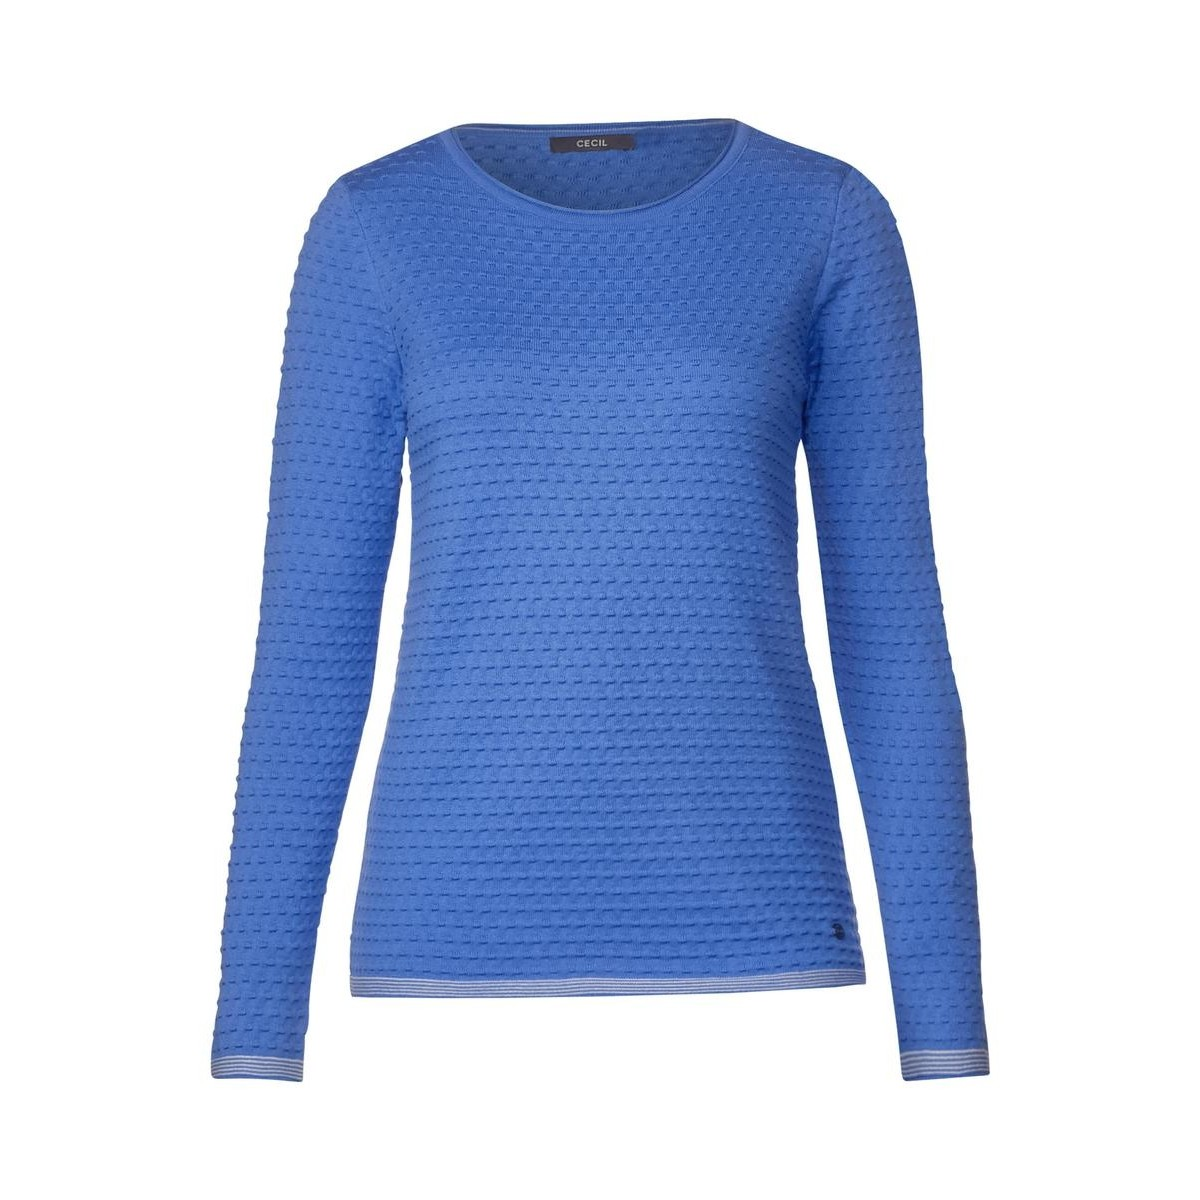 low cost best sell ever popular Sweater with dot structure by Cecil - blue - S